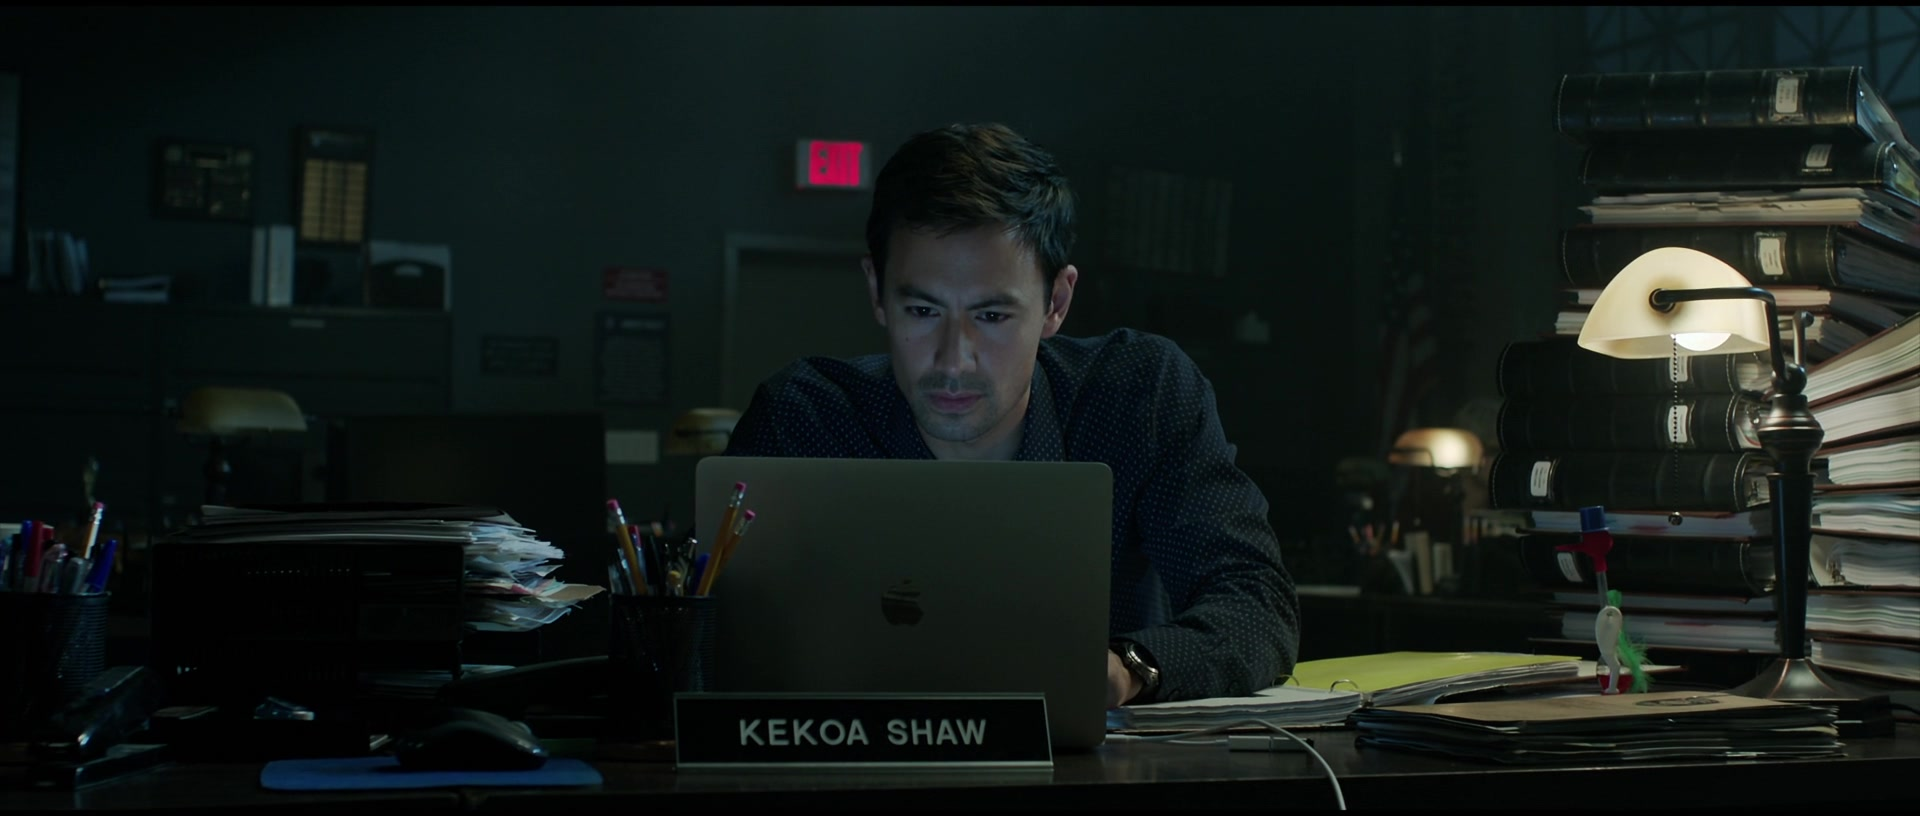 Apple MacBook Laptop Used By George Young As Kekoa Shaw In Malignant (2021)